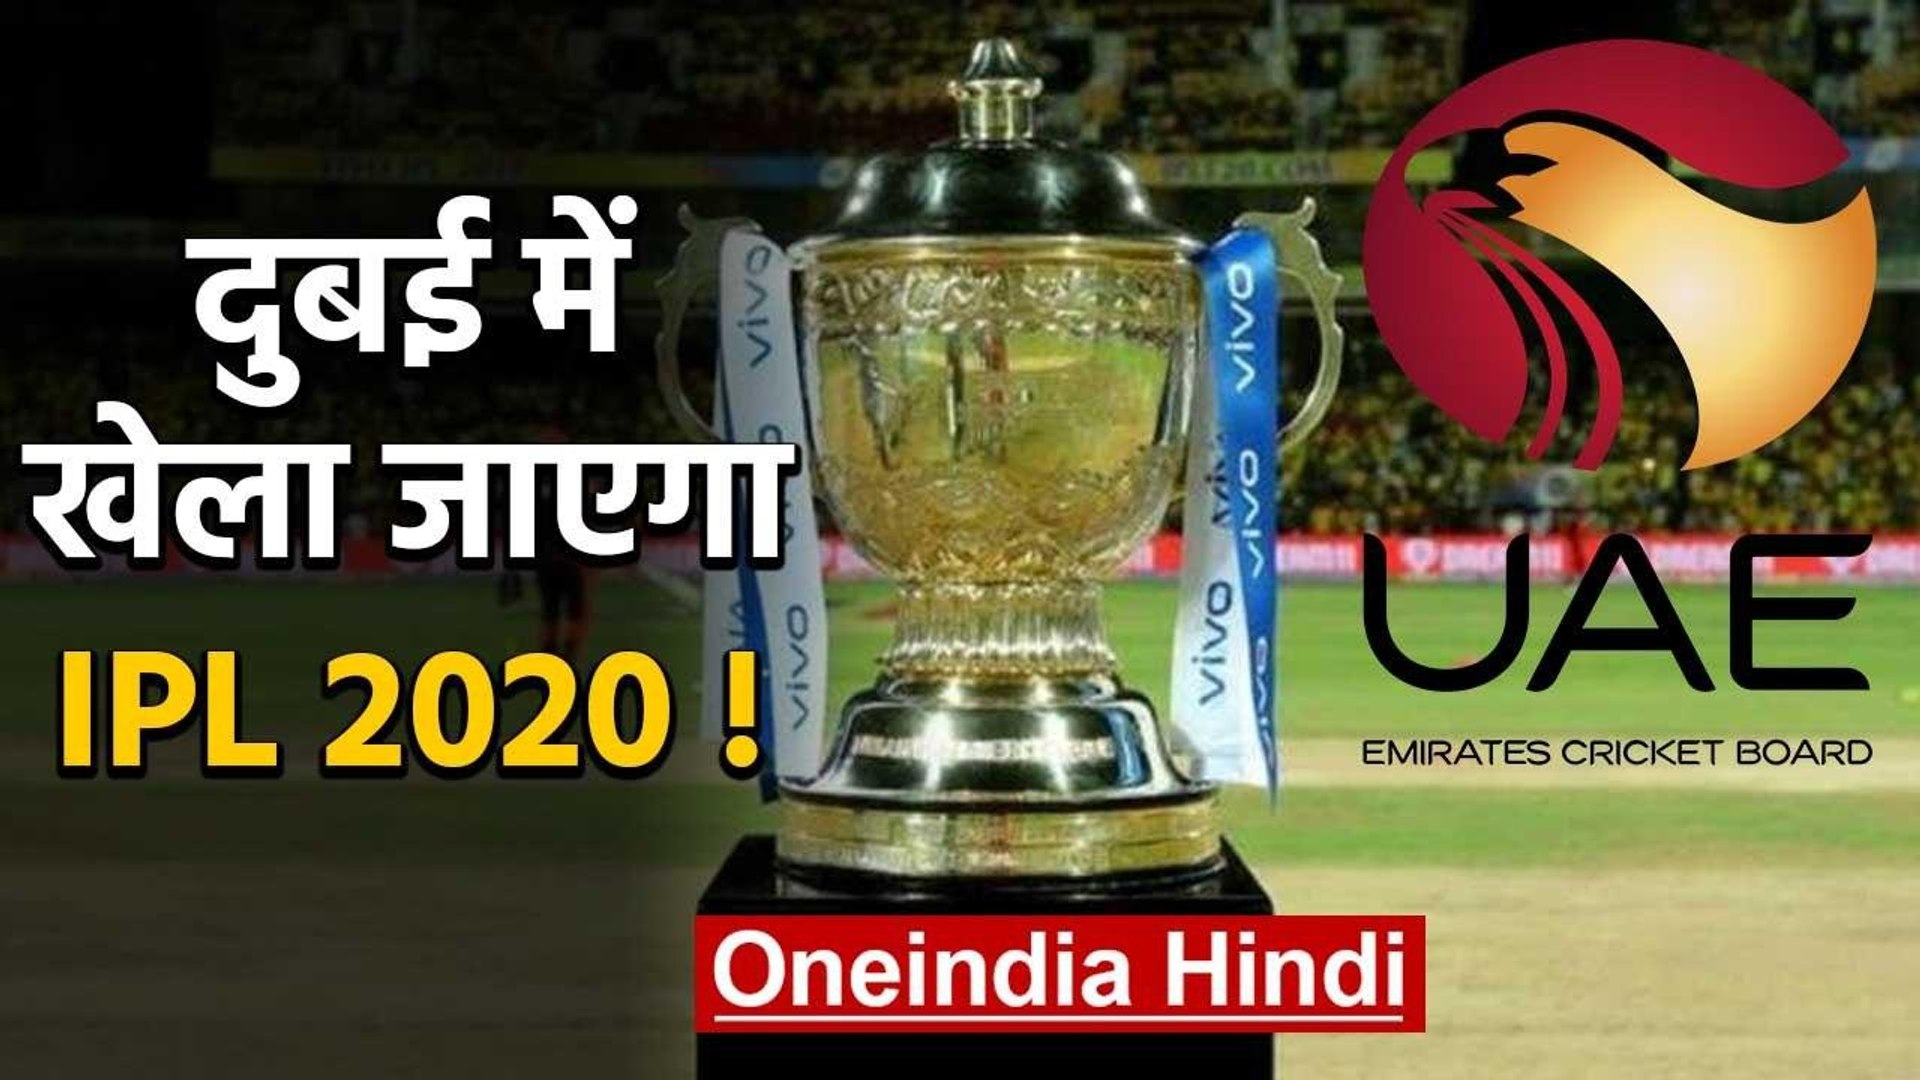 IPL 2020: Emirates Cricket Board has offered to host the 13th IPL season in the UAE| वनइंडिया हिंदी